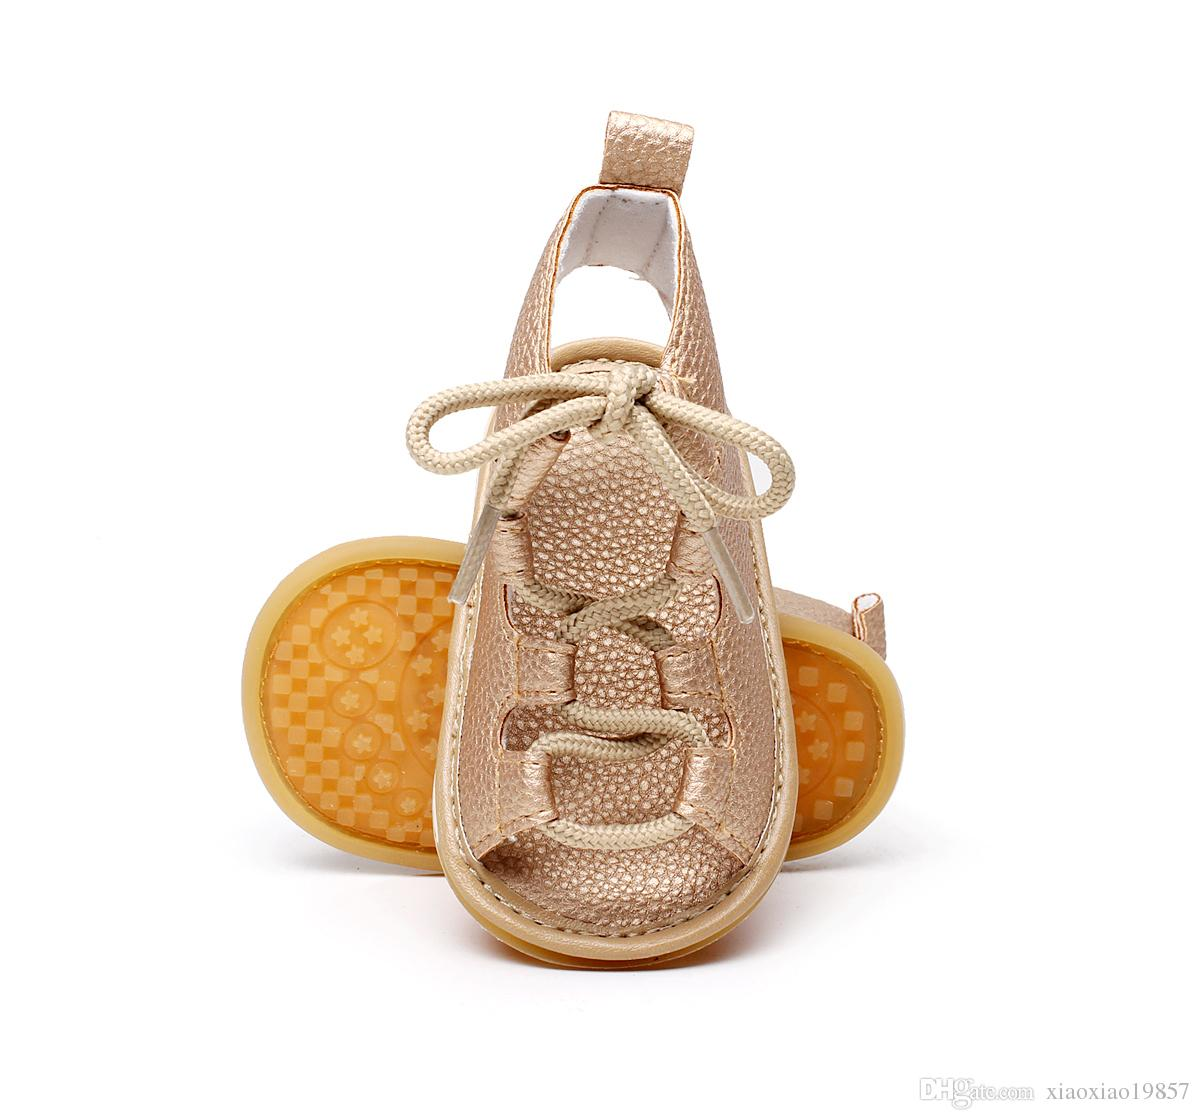 8f84f24477c Baby Girls Sandals Summer Rubber Sole Toddler Kids Lace Up Sandals Girls  Rome Sandals Baby High Gladiator Sandal Child PU Leather Shoes Childrens  Shoes ...